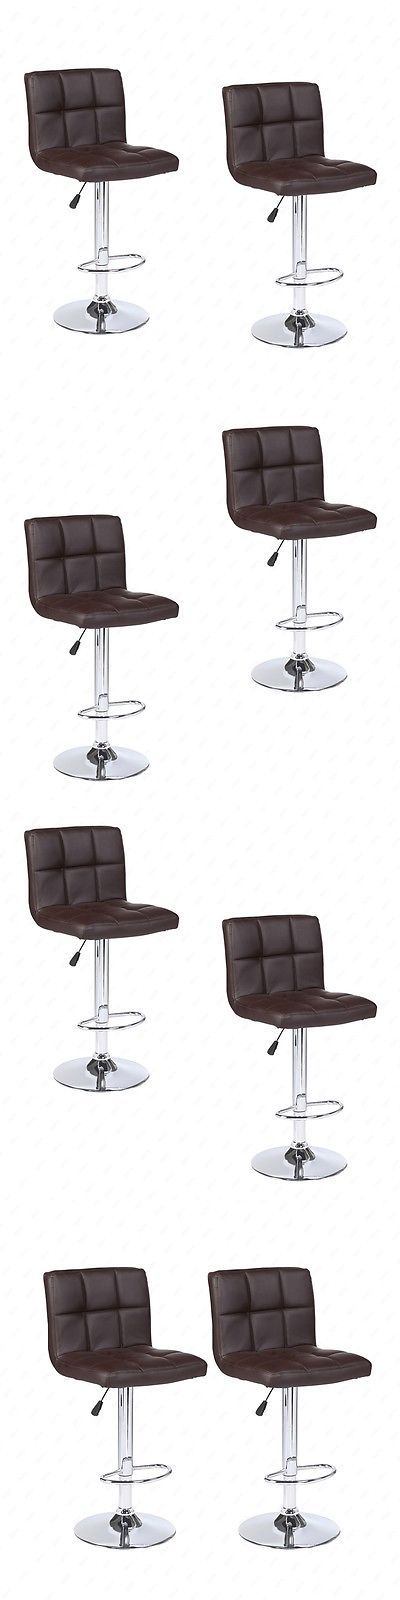 Bar Stools 153928: Modern Design Set Of 2 Bar Stools Leather Adjustable Swivel Pub Chair In Bown -> BUY IT NOW ONLY: $59.9 on eBay!